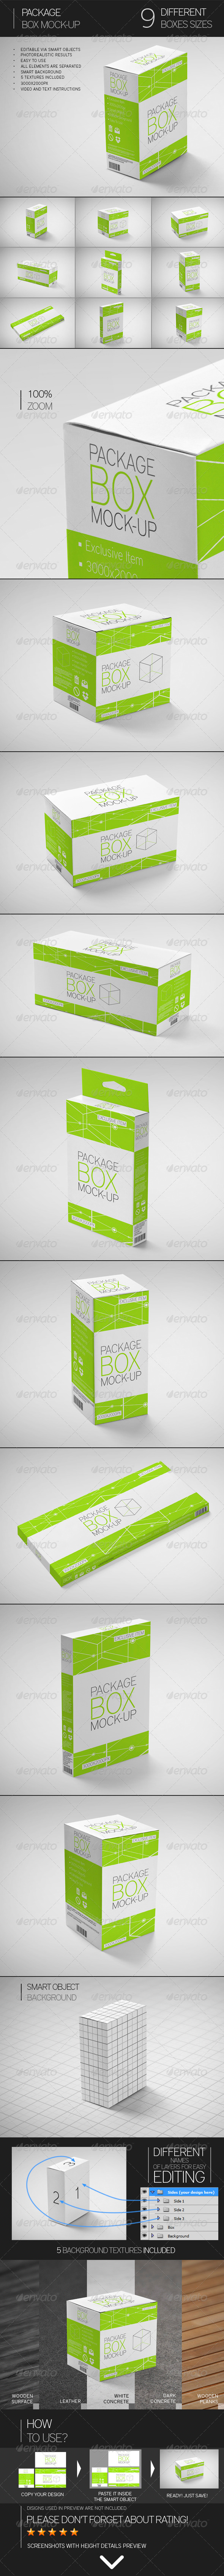 GraphicRiver Package Box Mock-Up 7546731